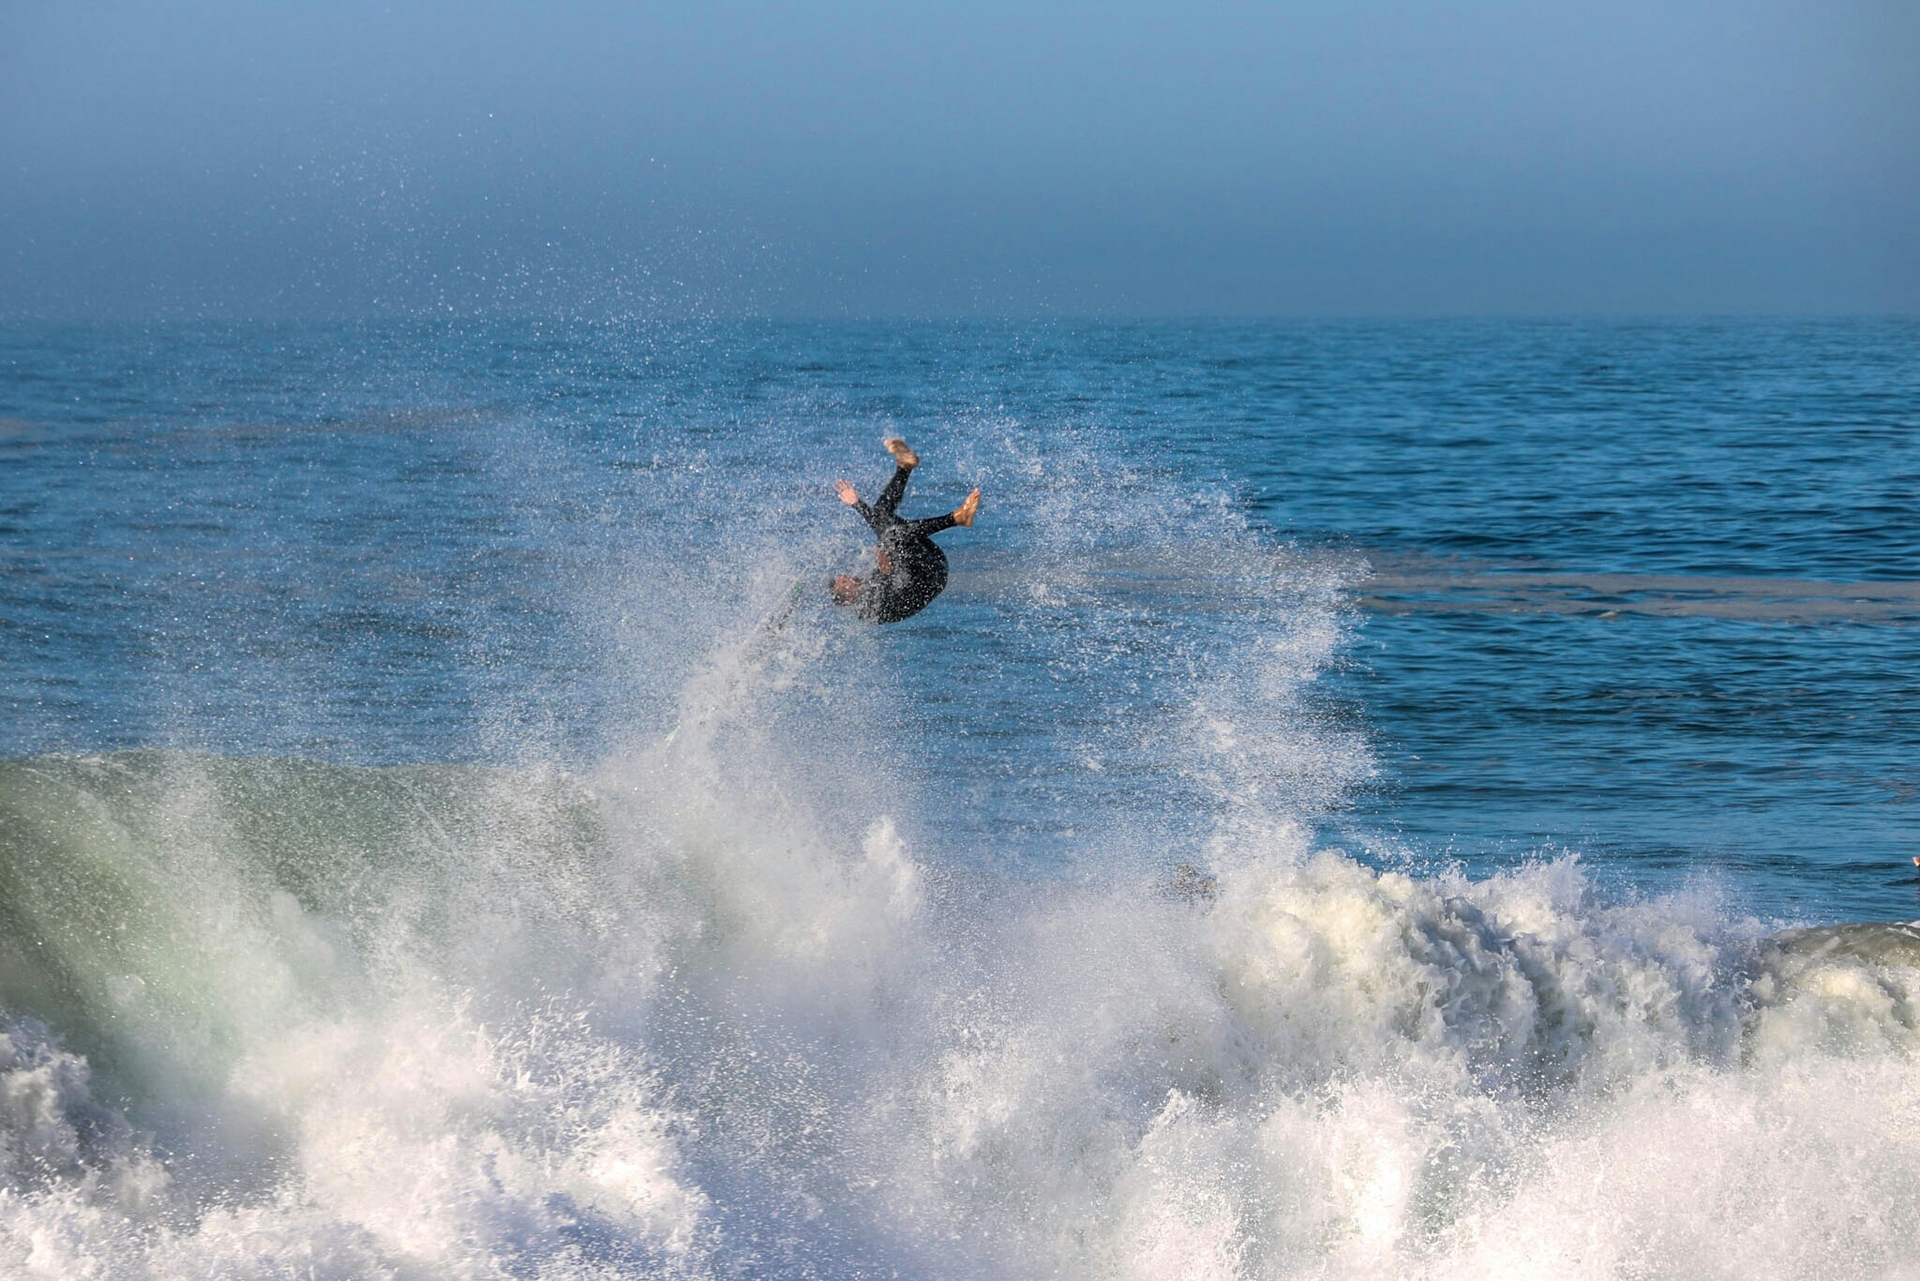 Surfer at The Wedge, Newport Beach, CA